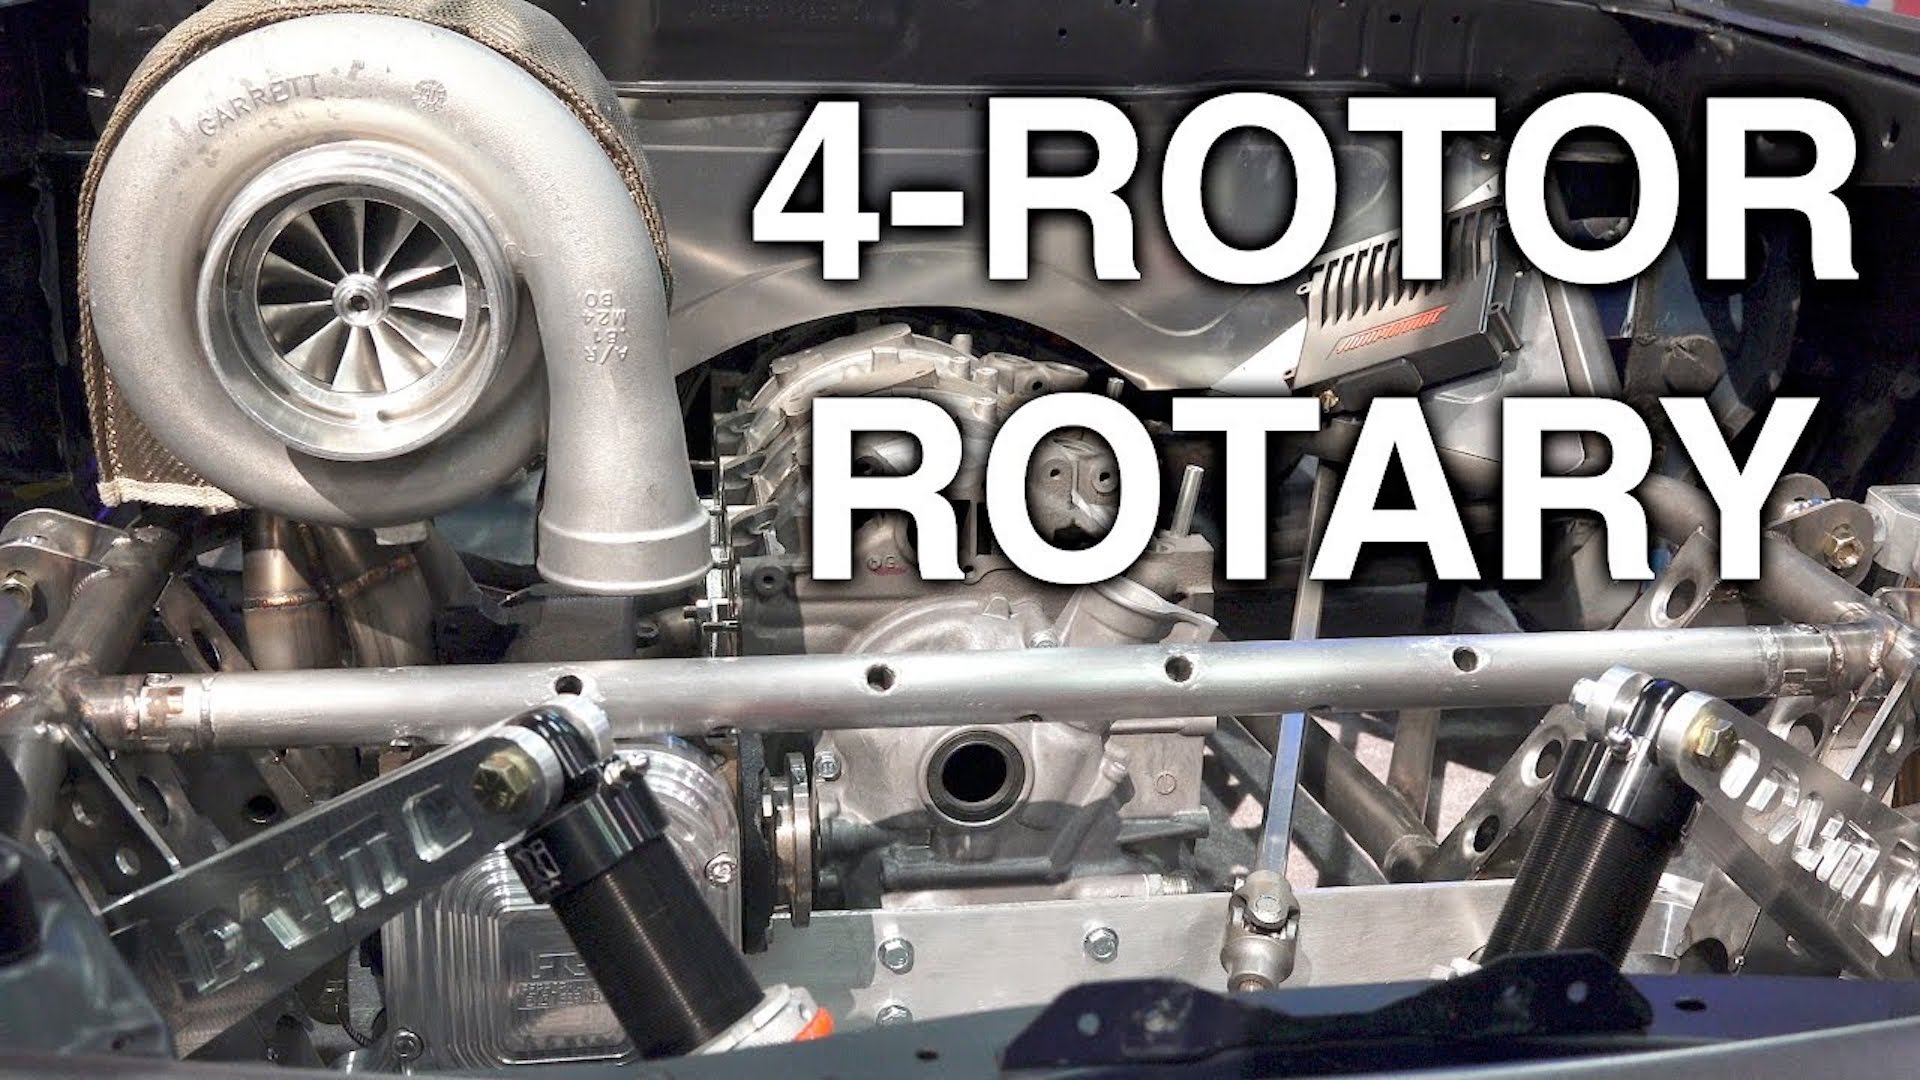 How The Elusive 4 Rotor Rotary Engine Works